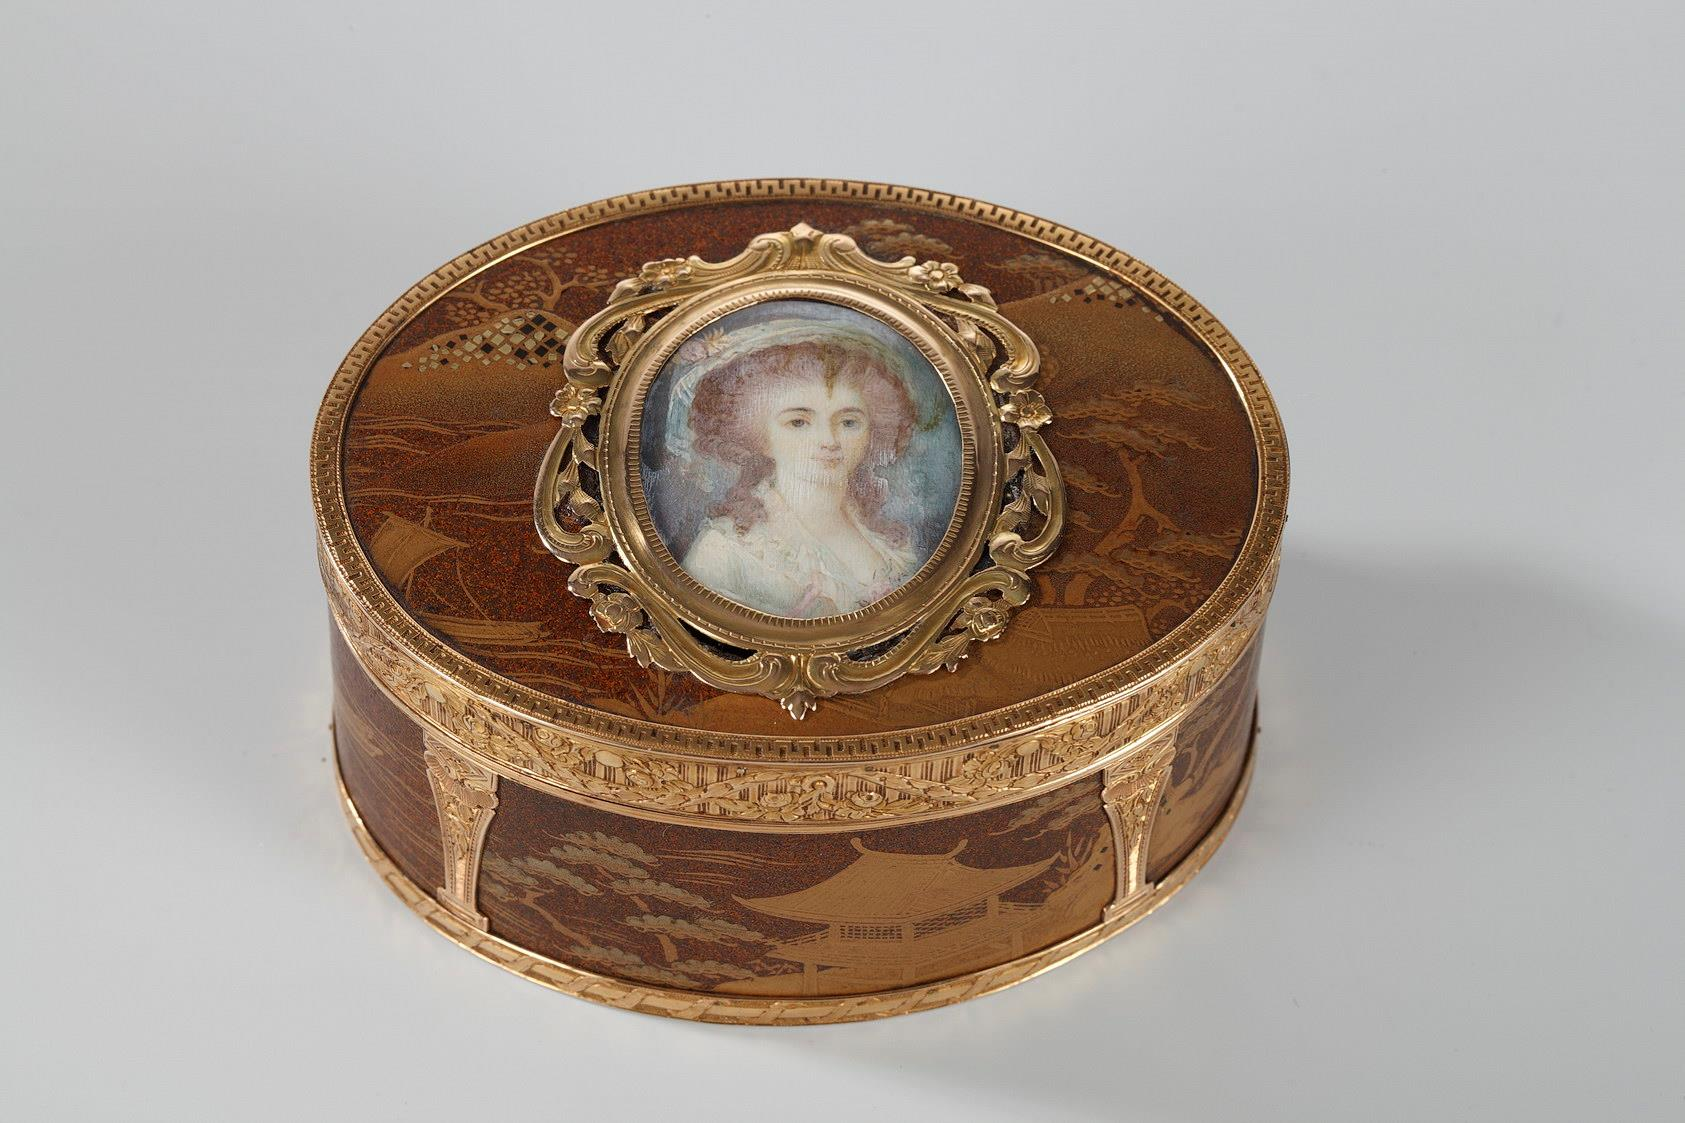 GOLD SNUFFBOX, LACQUER WITH MINIATURE ON IVORY.<br/> LOUIS XV PERIOD.